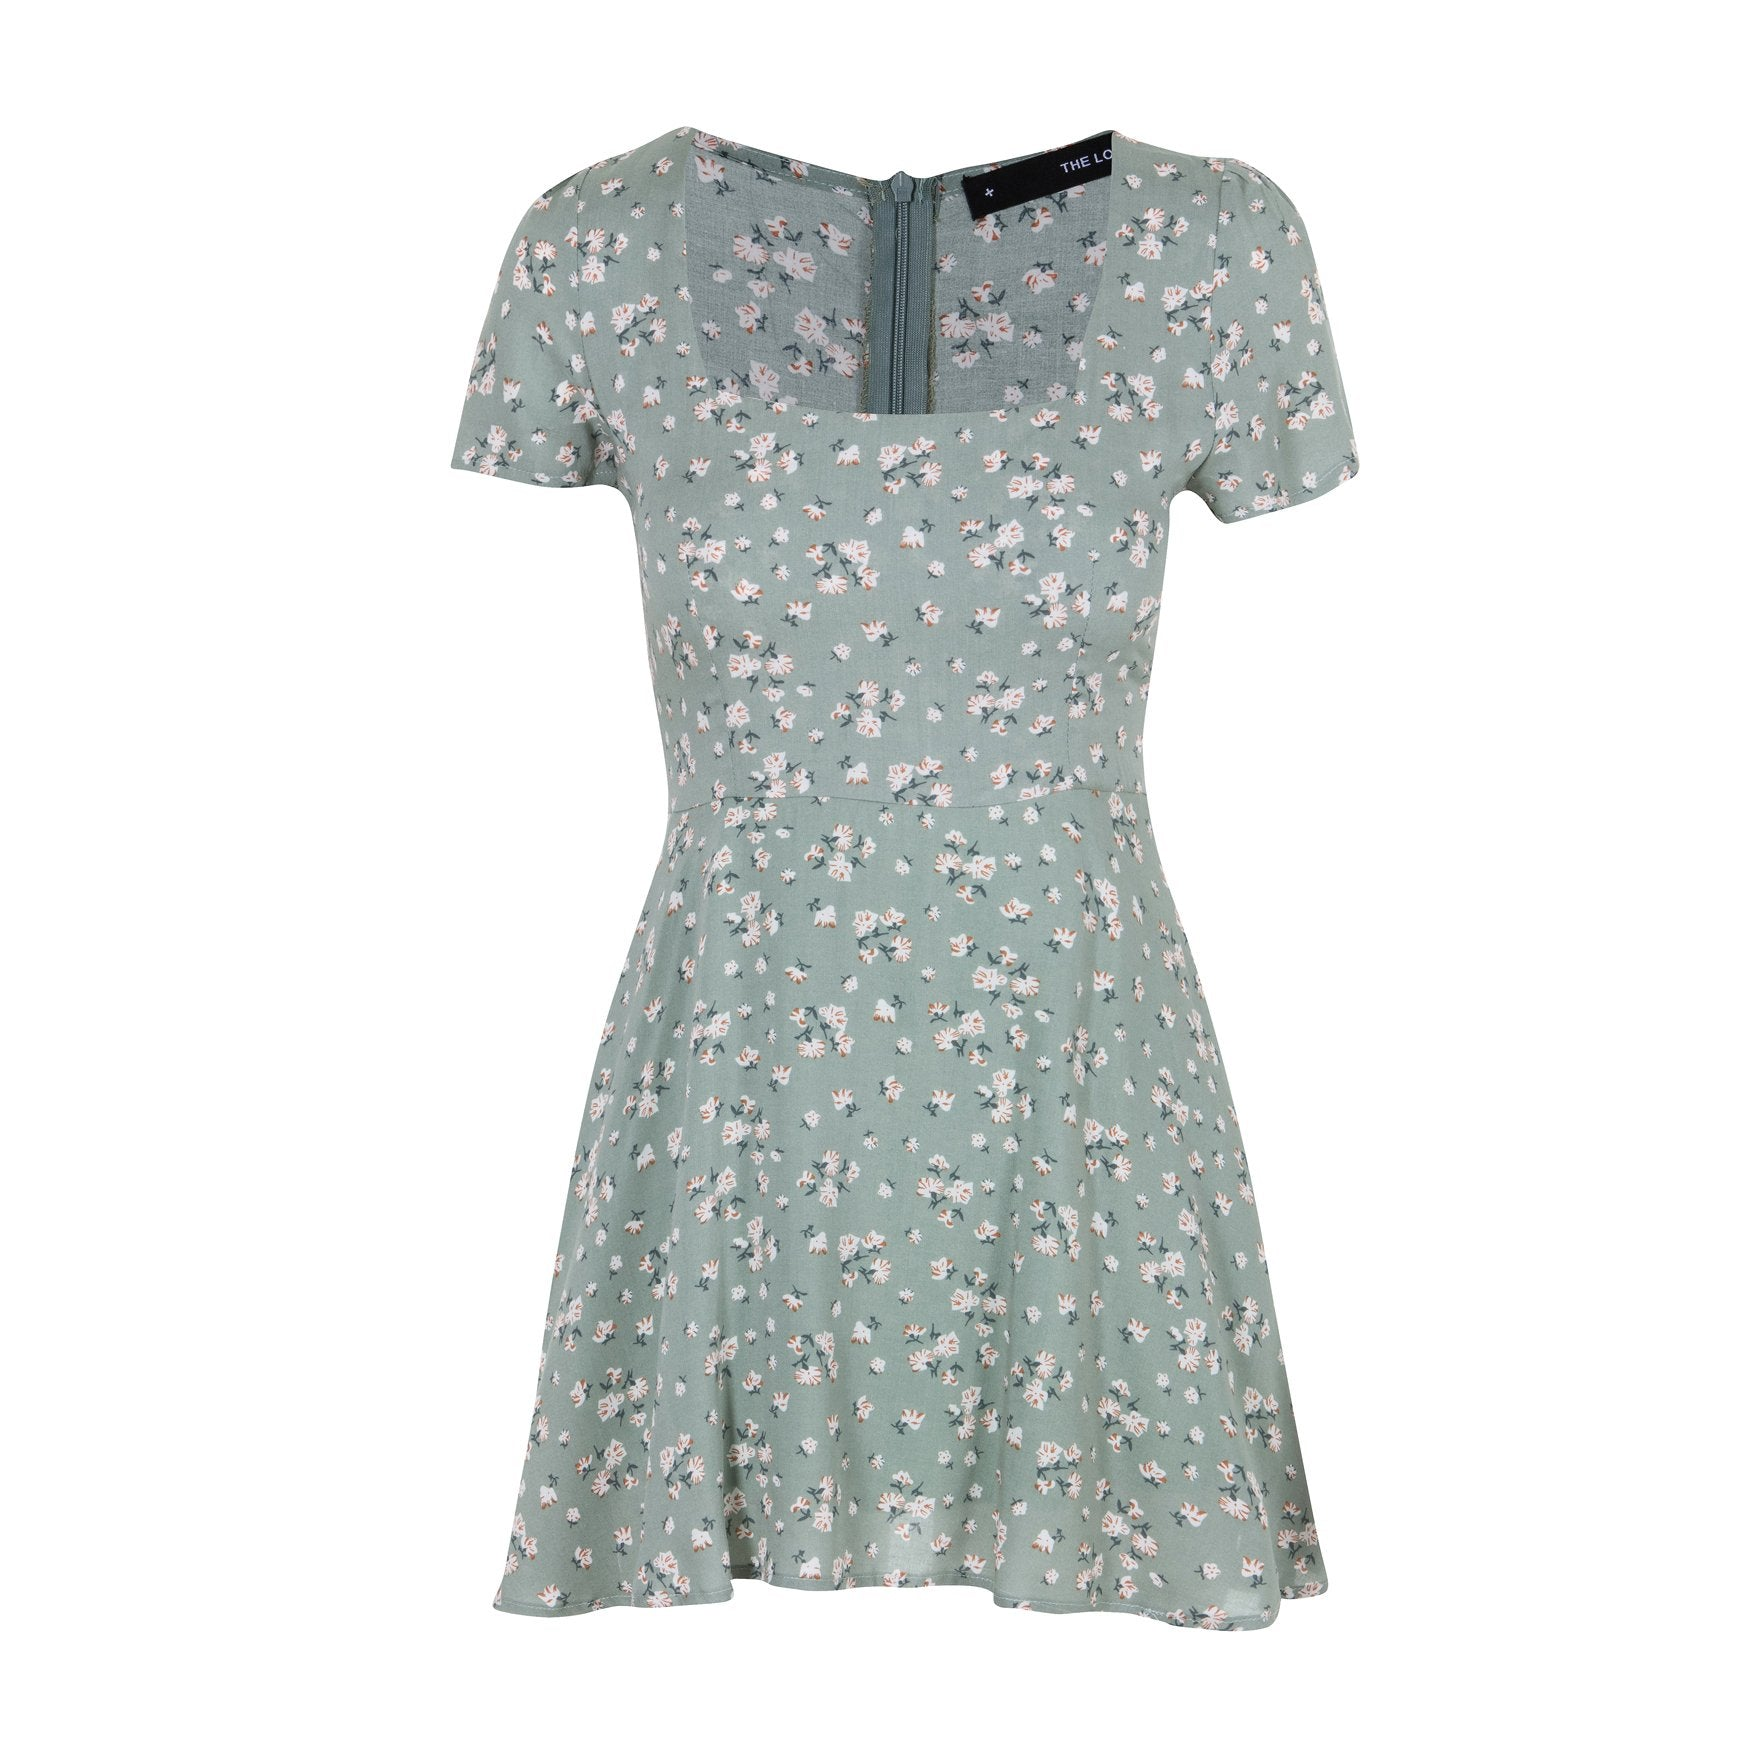 Take It Easy Summer Dress Green Floral